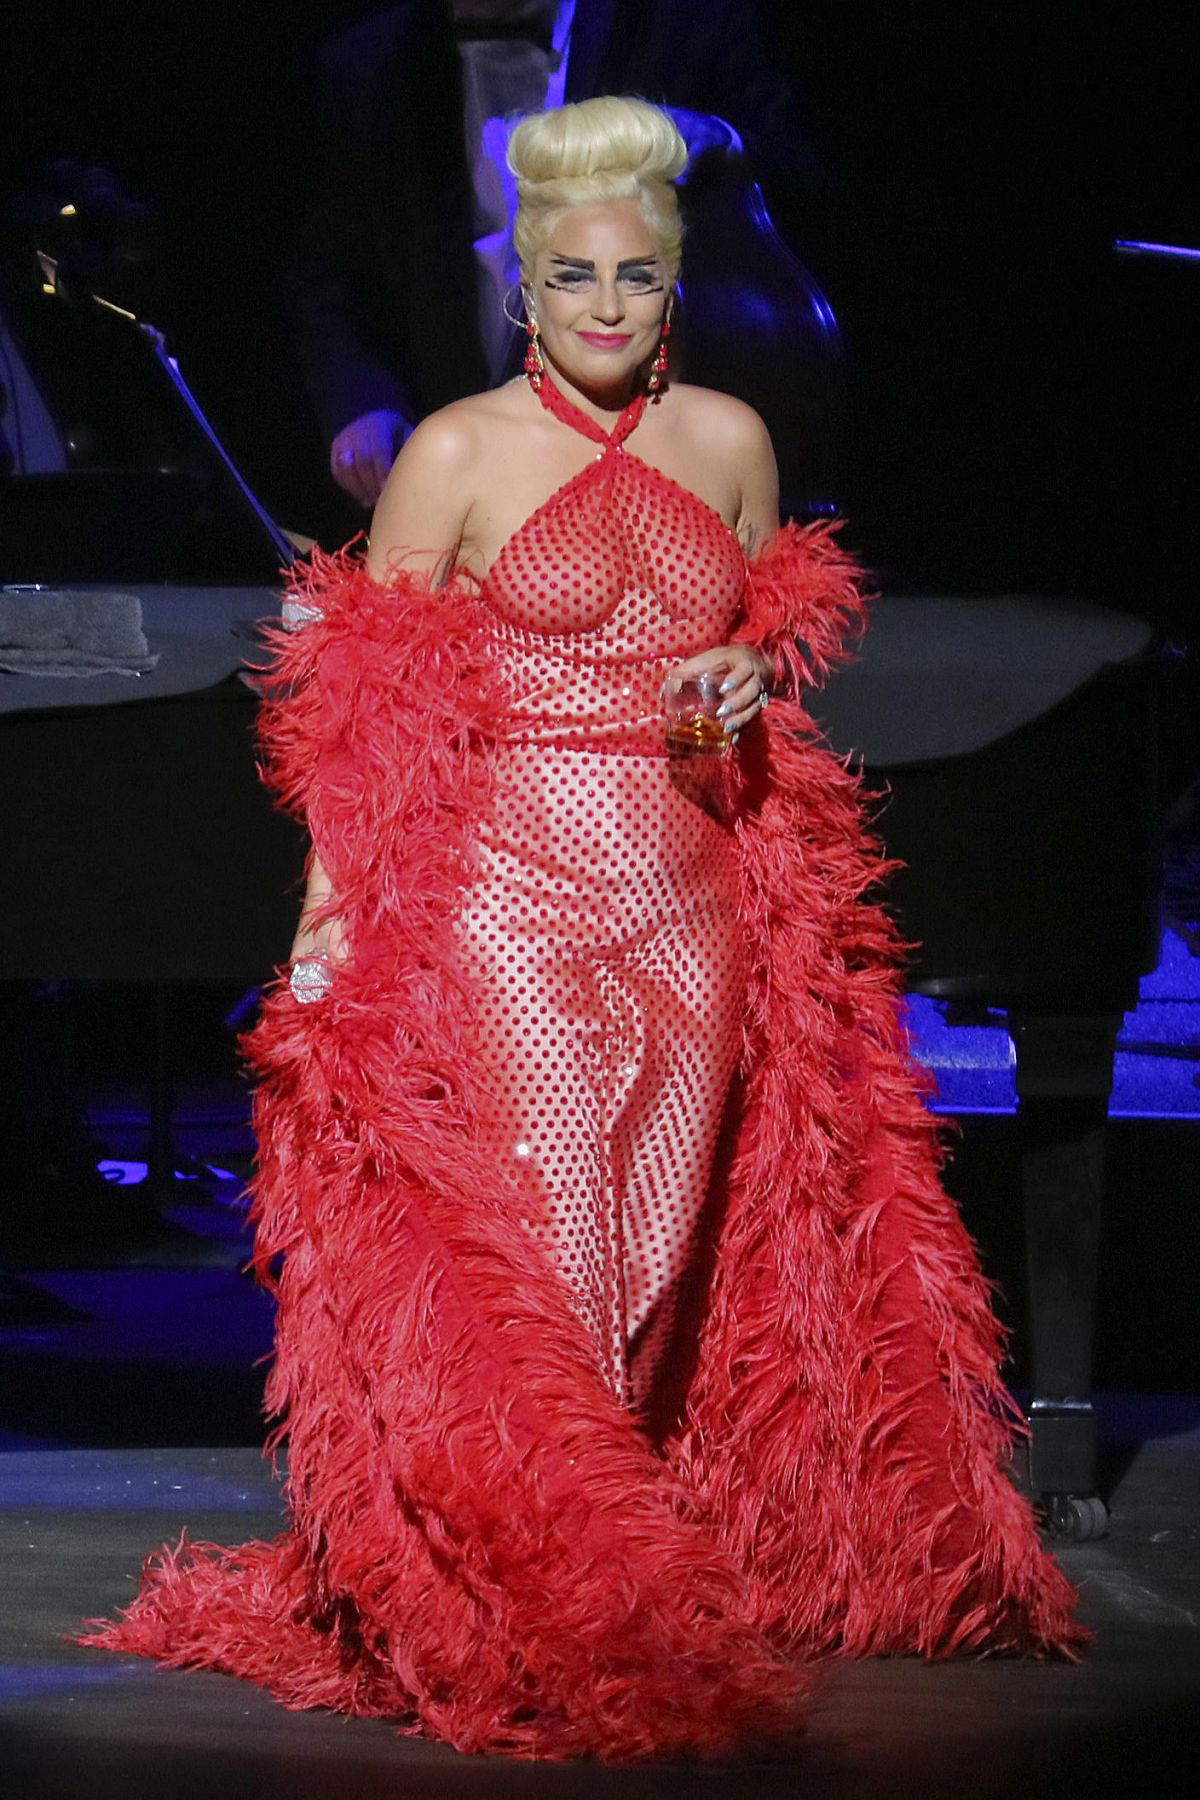 LADY GAGA at Cheek to Cheek Tour in Vancouver - HawtCelebs ... Lady Gaga Tour